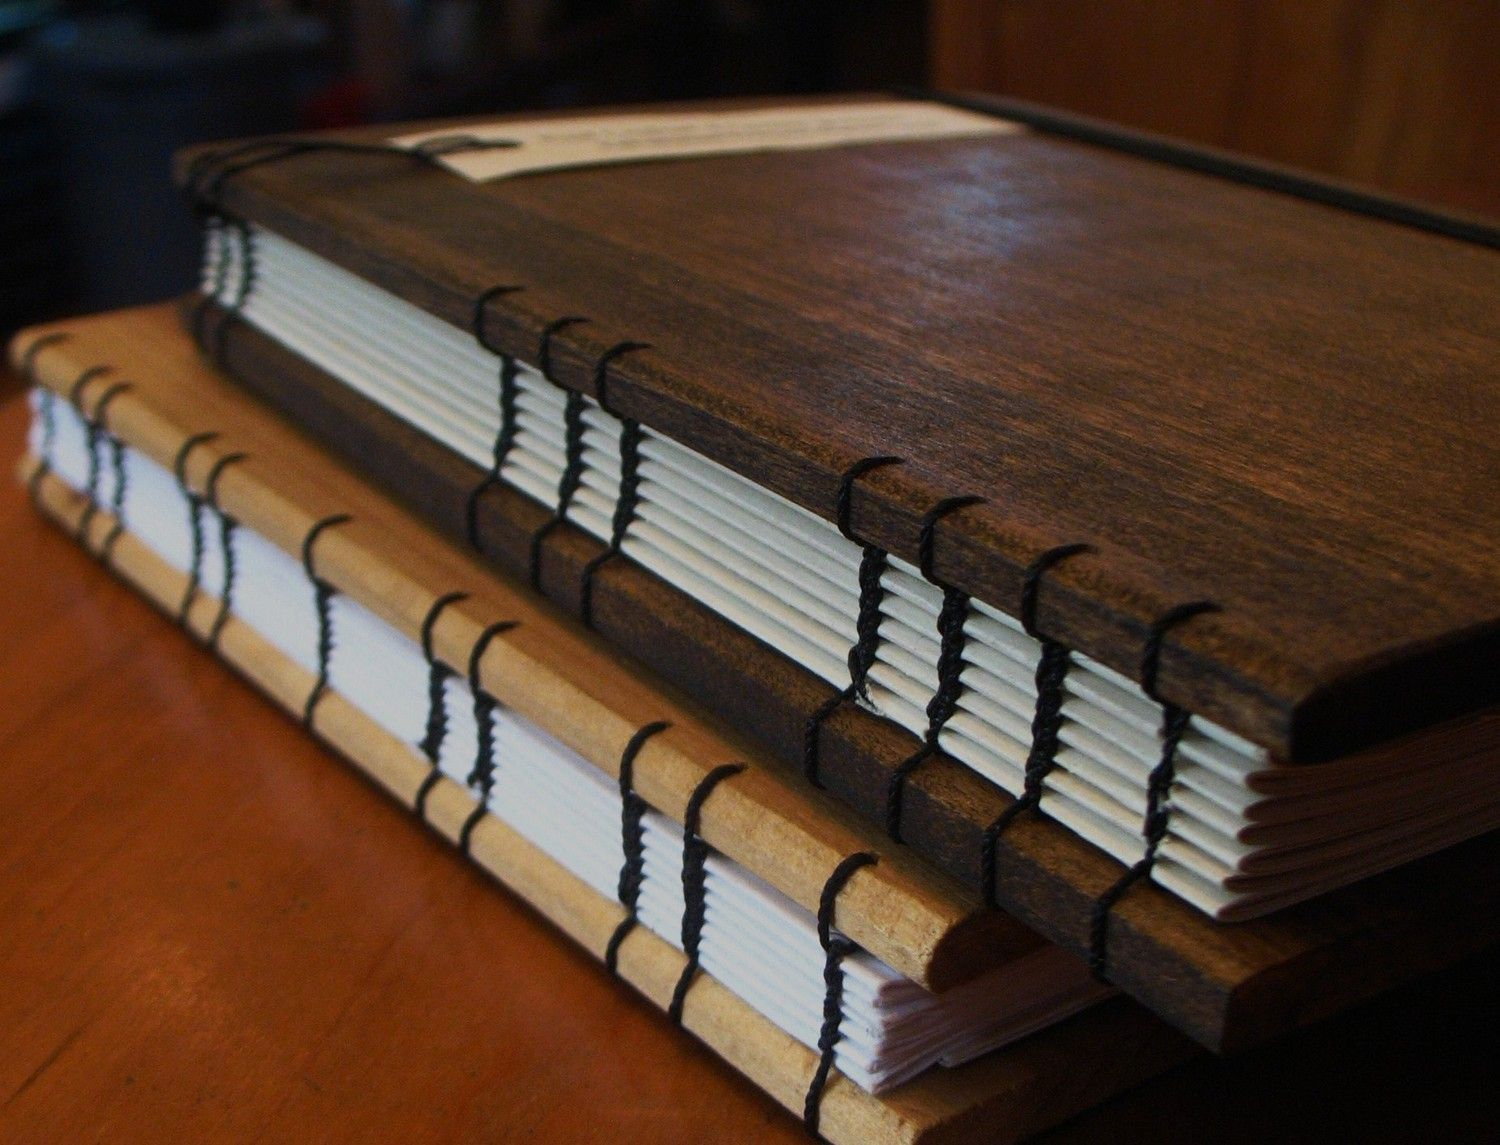 Wooden Book Cover Diy : Nice wooden book covers bookbinding pinterest